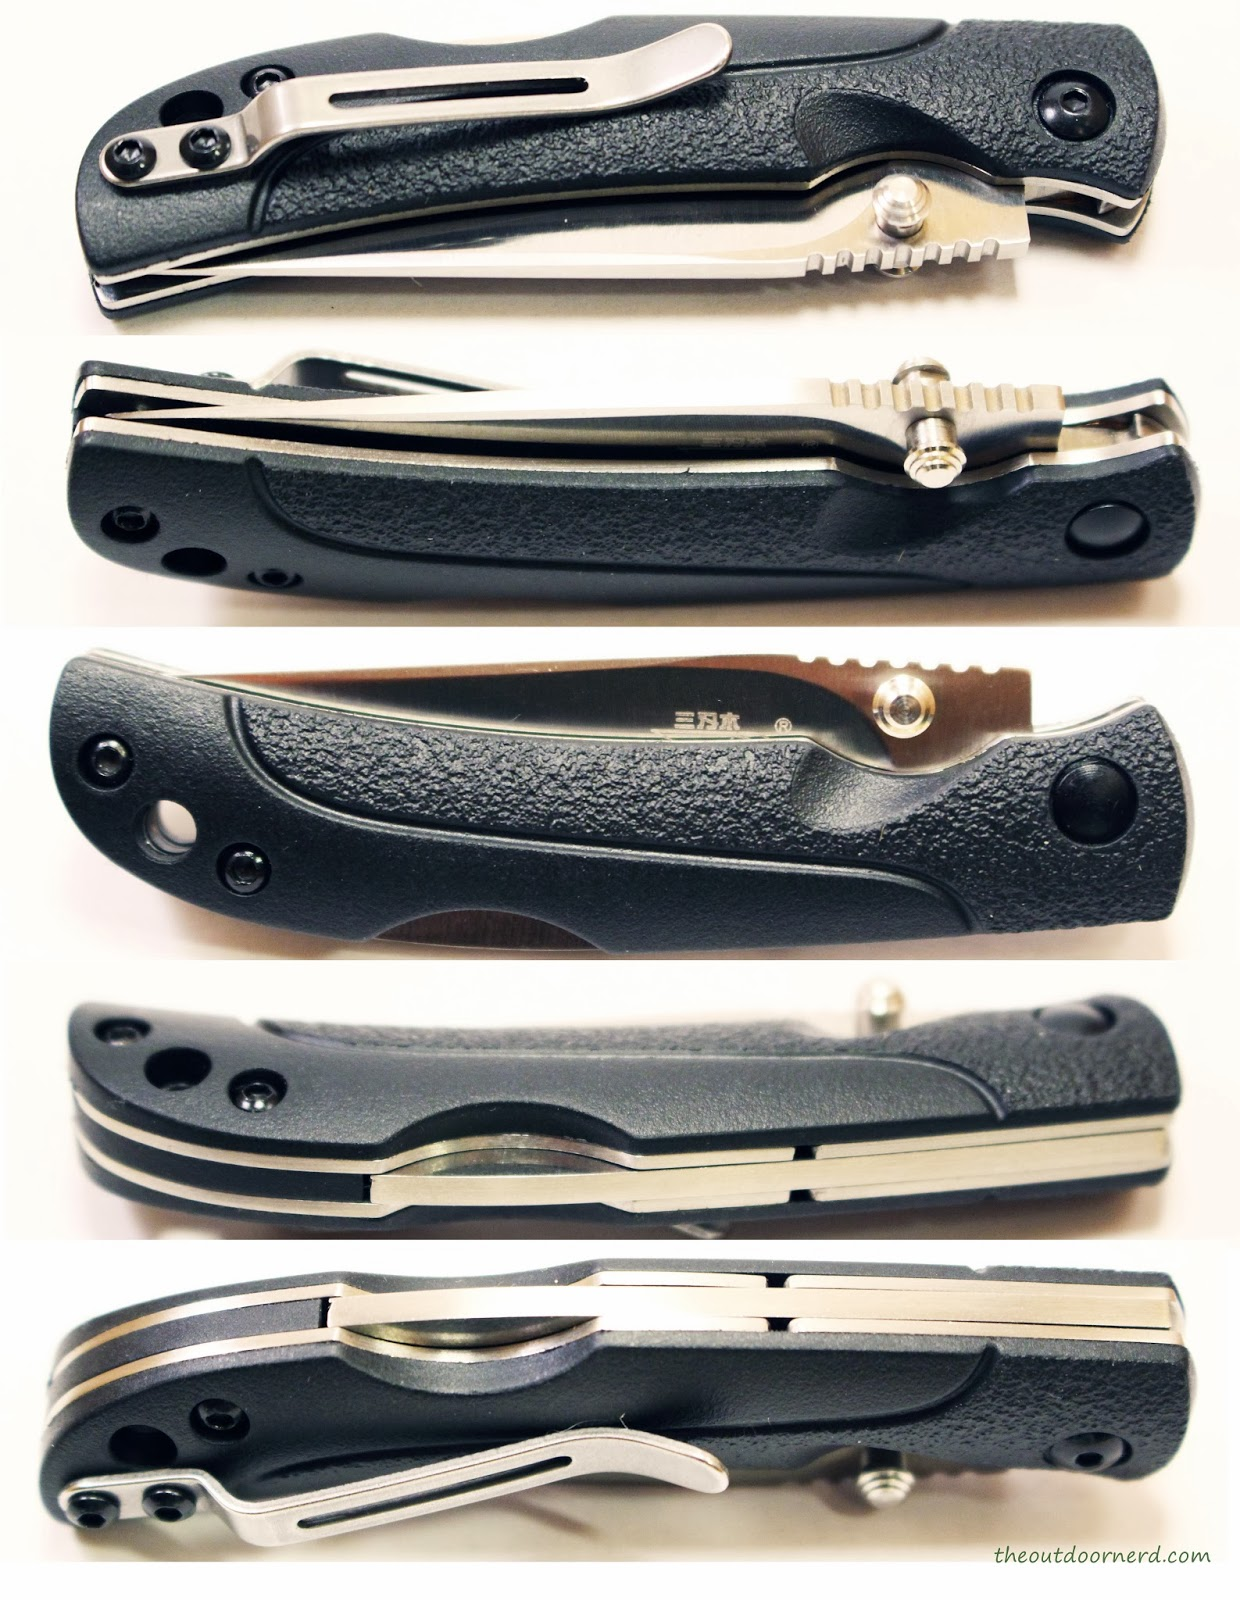 SanRenMu ZB-681 Pocket Knife - Multi-View Closed